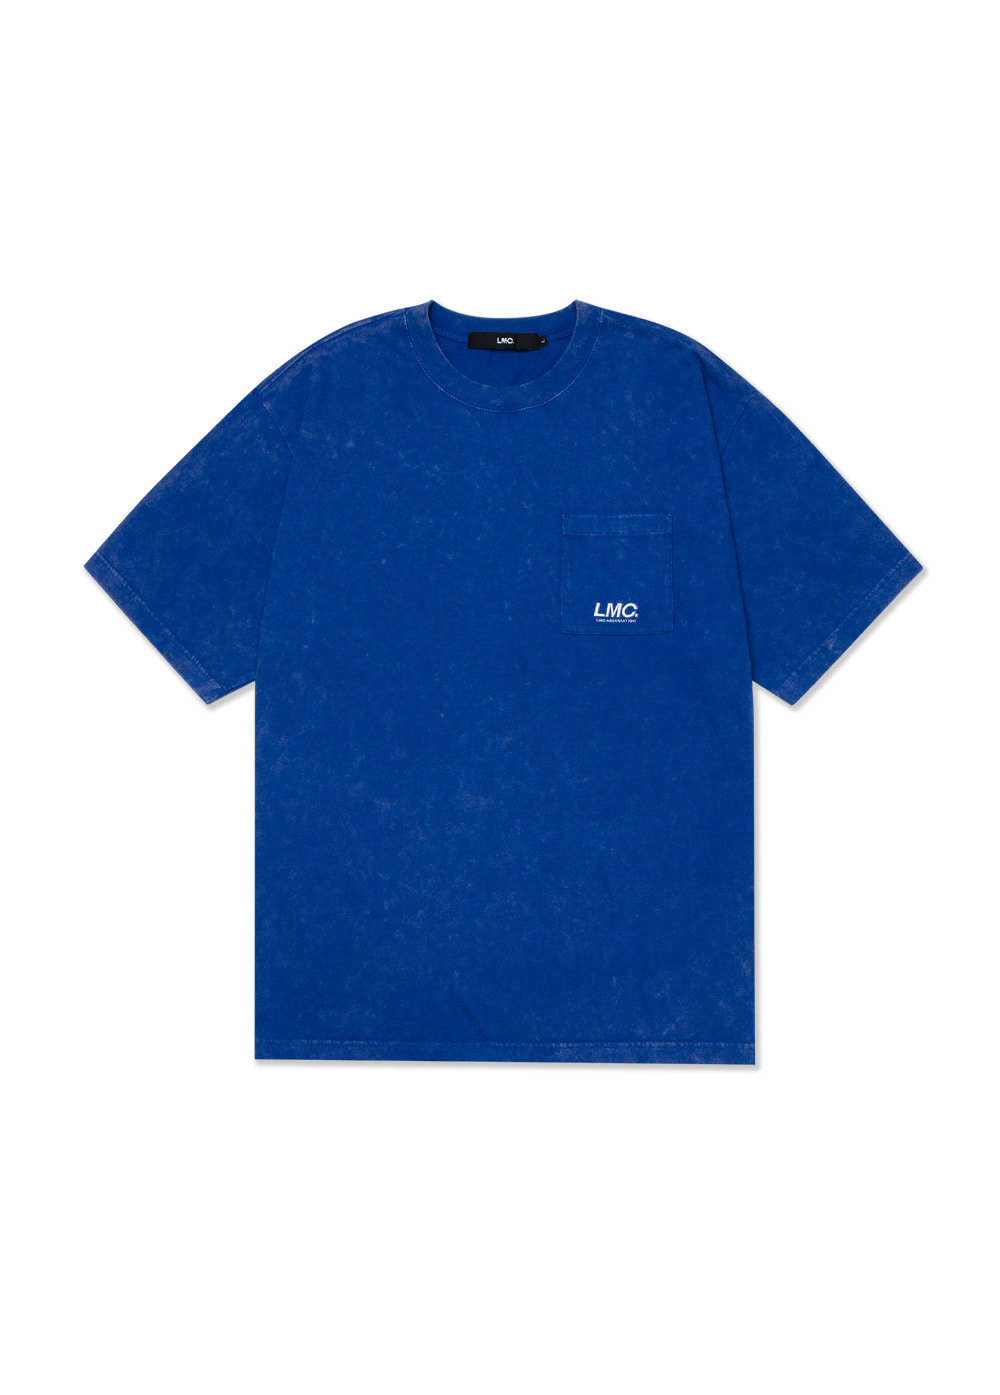 LMC ACID WASHED POCKET TEE royal blue